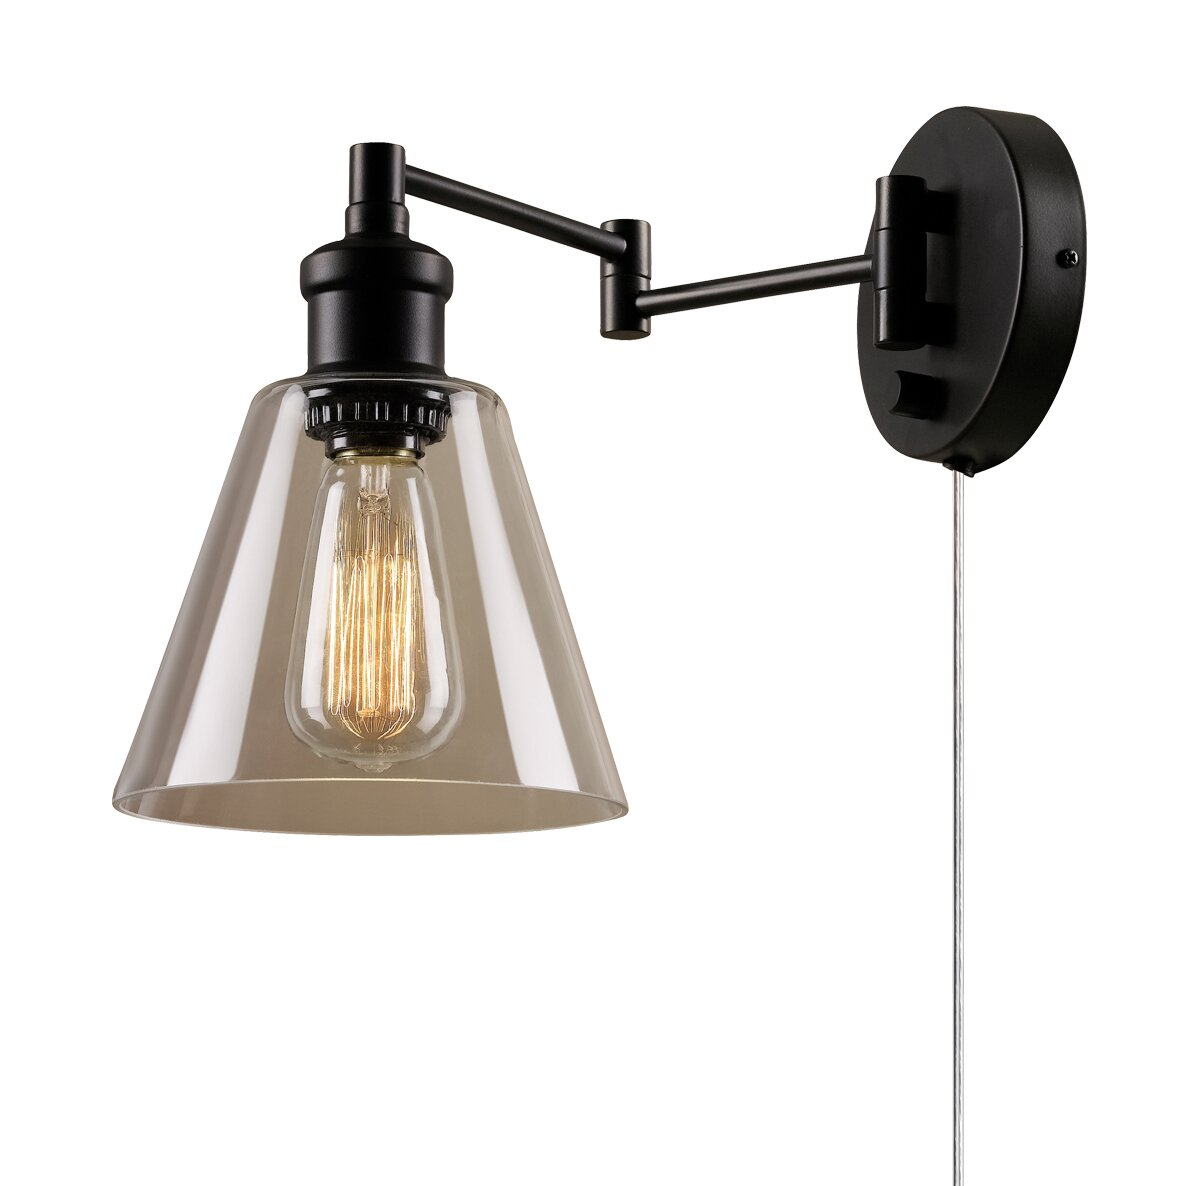 Wall Sconce Electric Box : Globe Electric Company LeClair 1-Light Wall Sconce & Reviews Wayfair